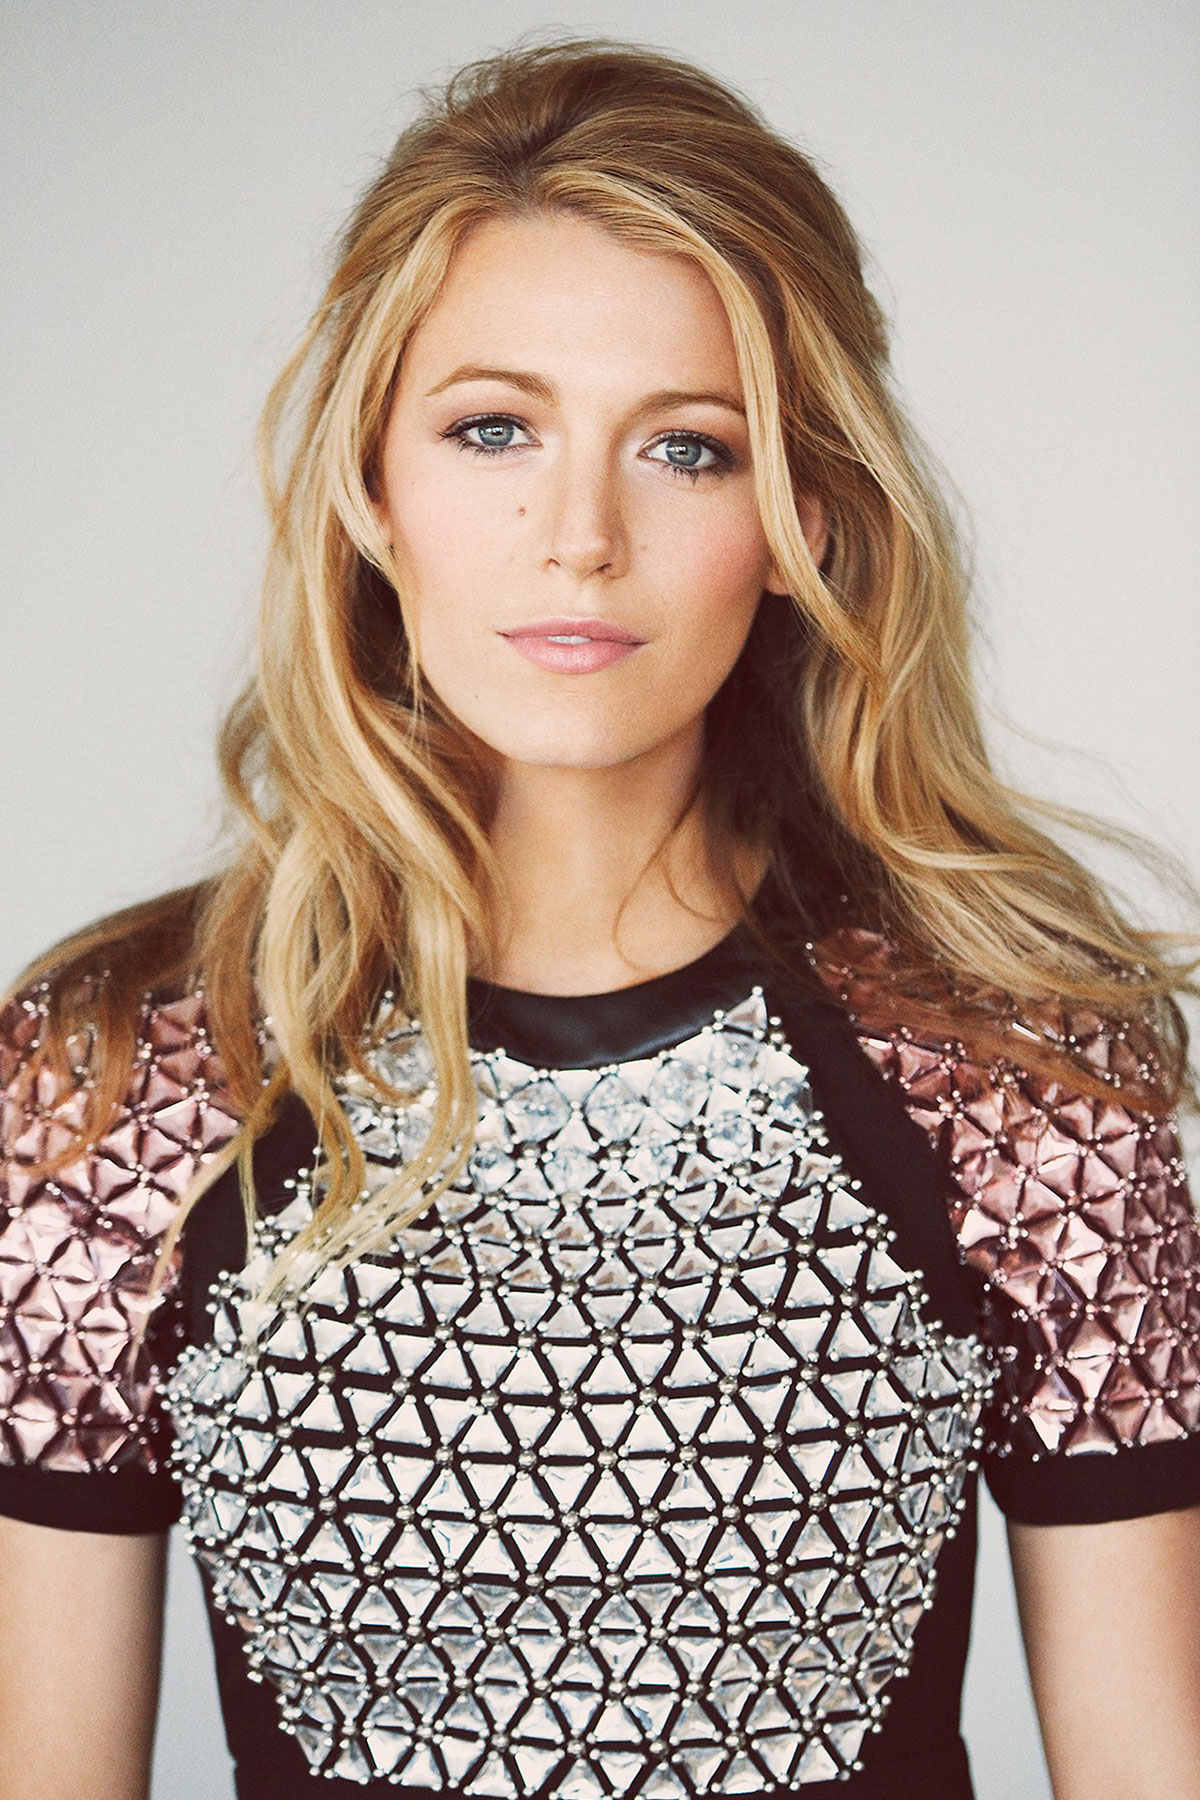 BLAKE LIVELY - Gucci 2014 Photoshoot by Guy Aroch ...